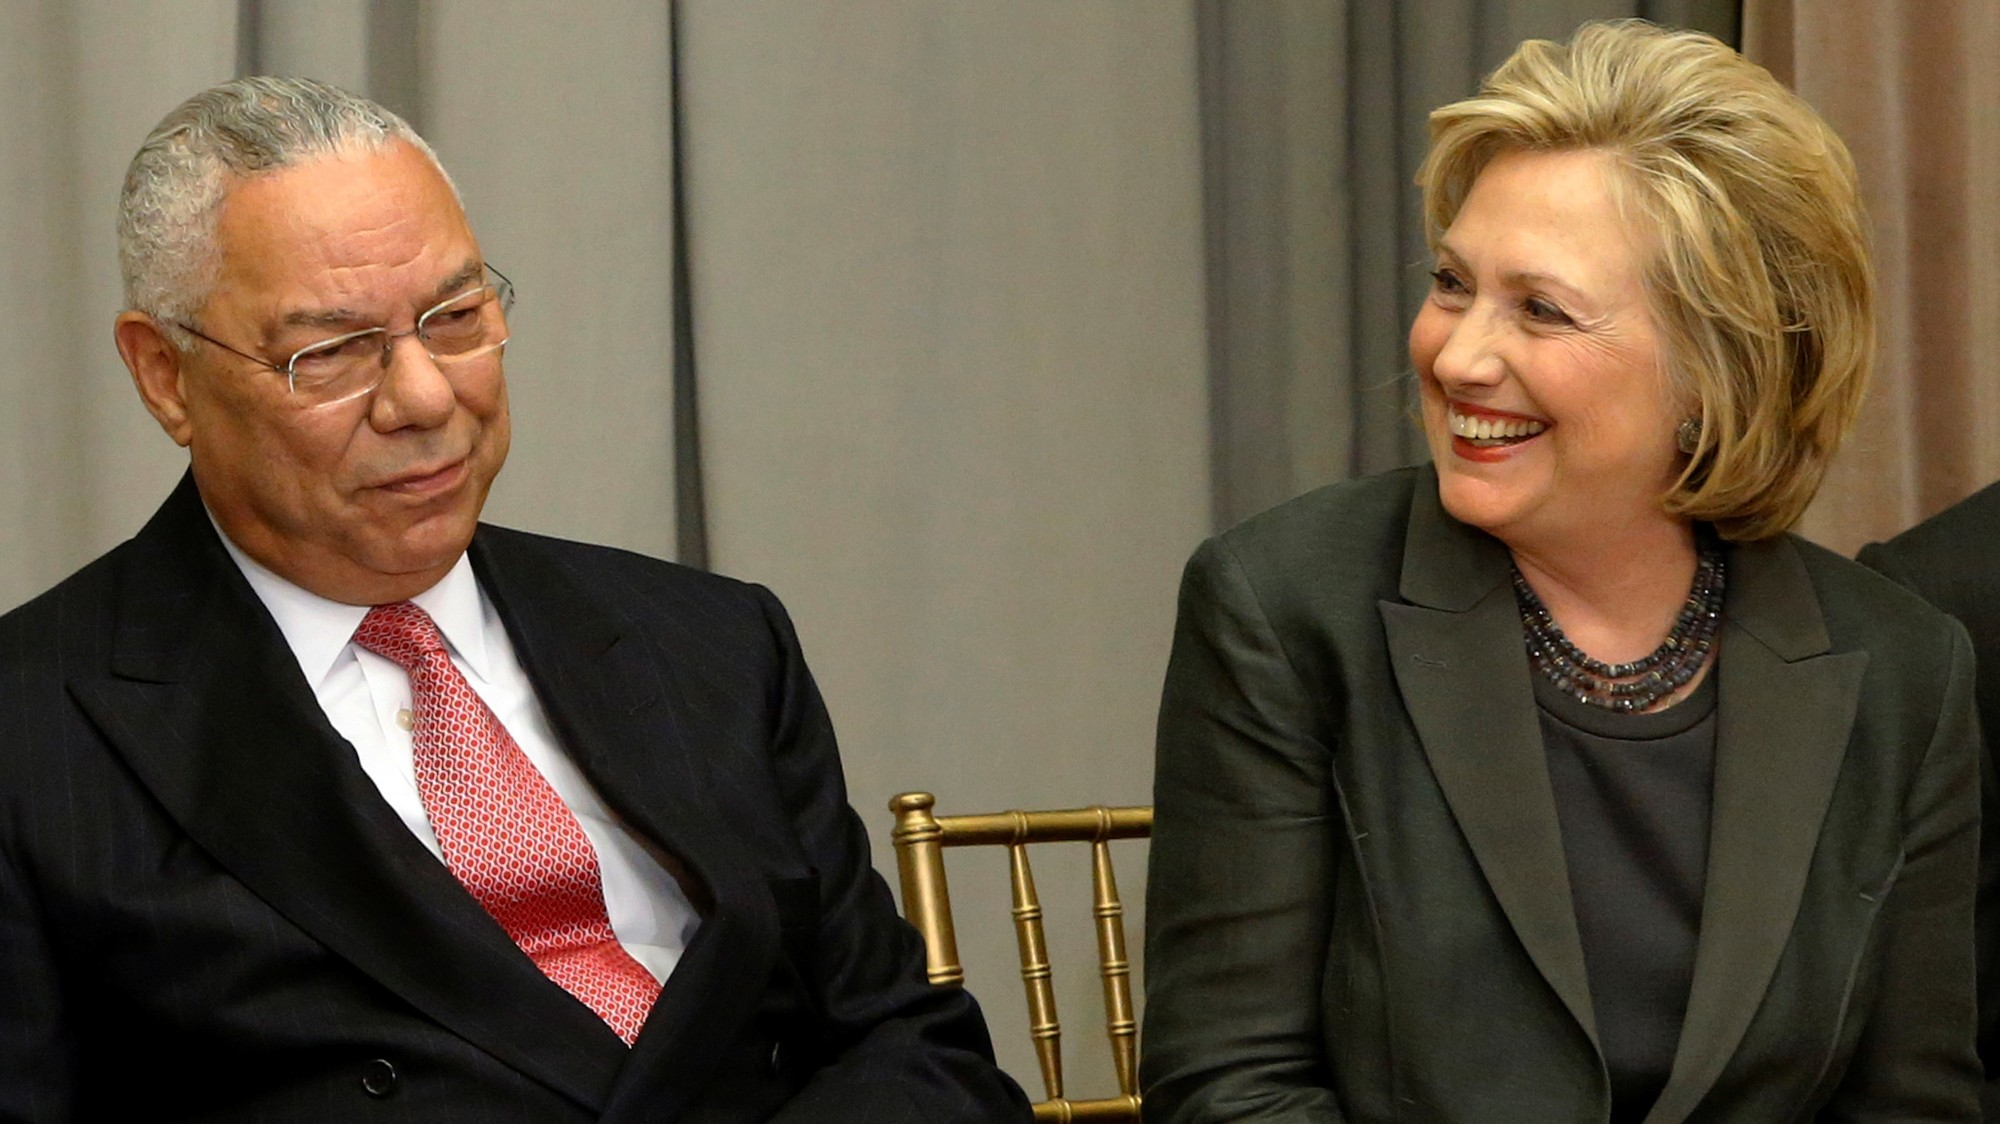 Colin Powell told Hillary Clinton how he 'got around' email rules